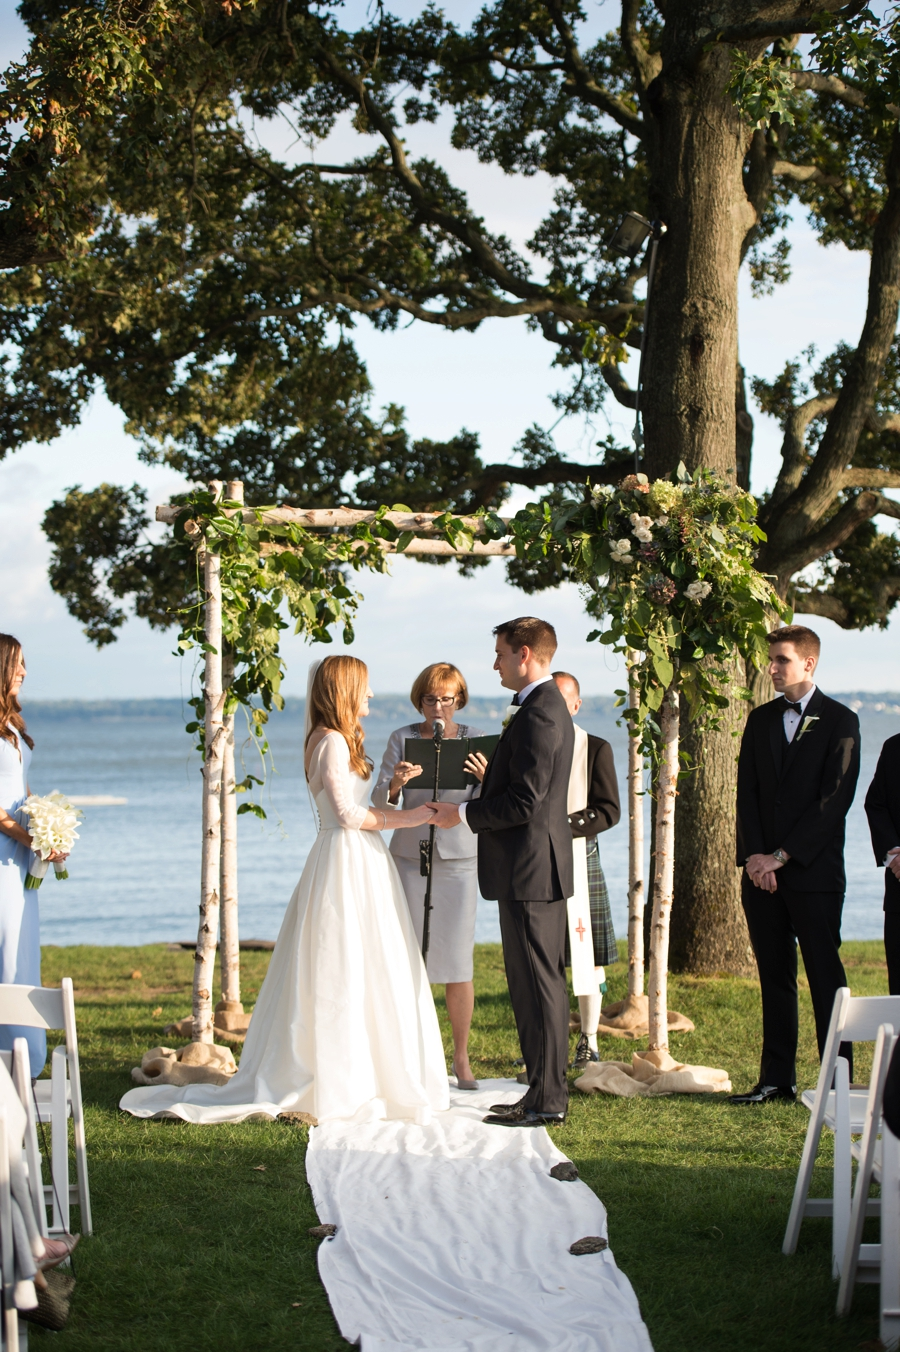 Shenorock_Shore_Club_NY_Wedding_JS_37.jpg